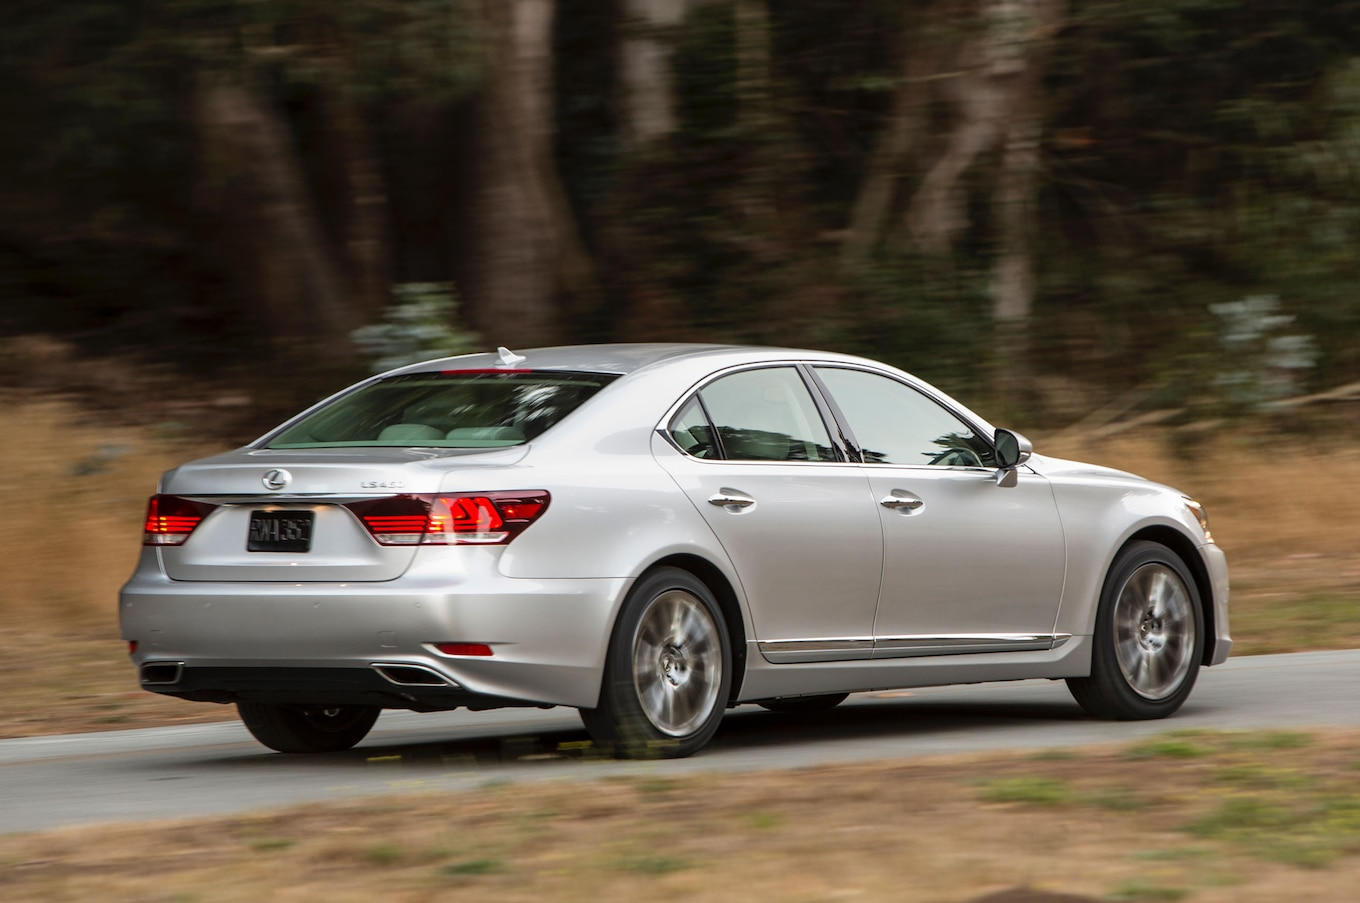 2015 Lexus LS460 Reviews and Rating